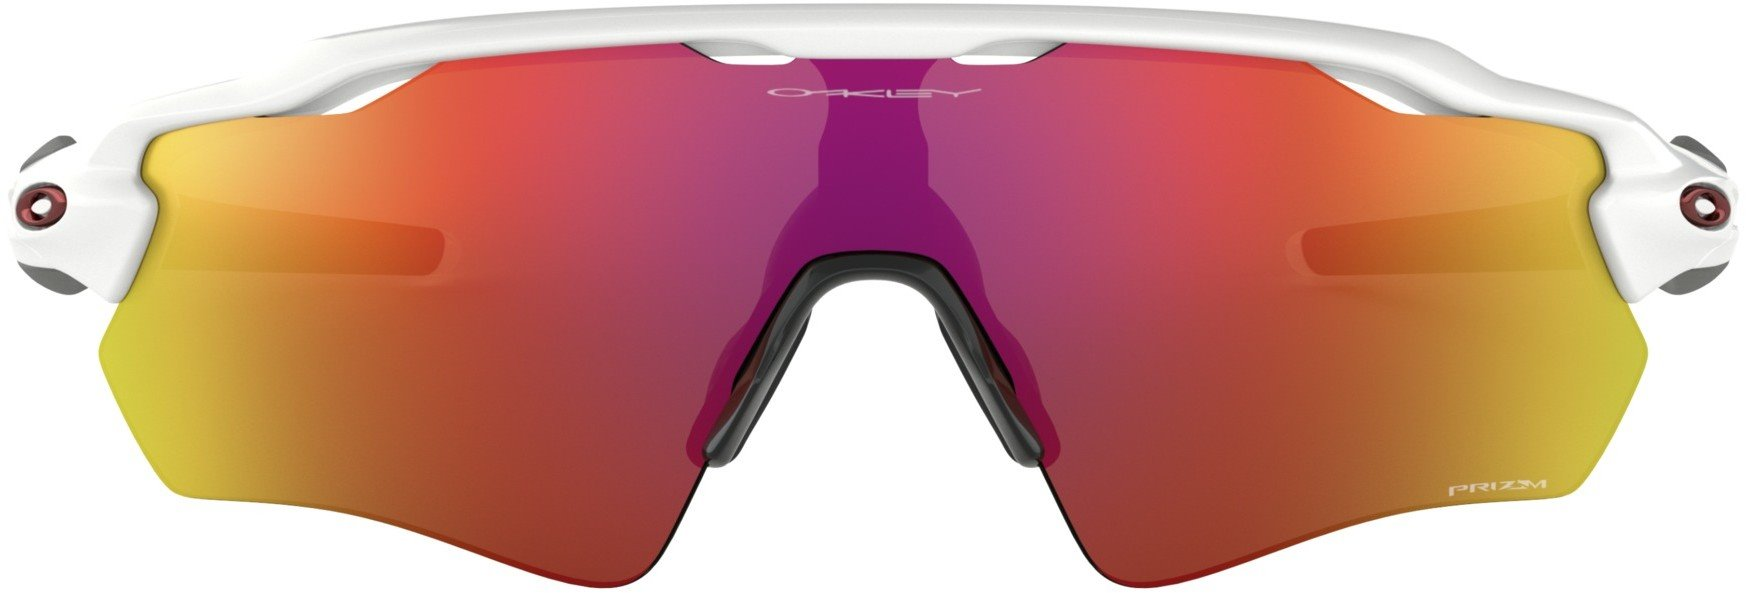 7e5a9432b2 OAKLEY Radar EV Path Polished White - PRIZM Ruby (OO9208-7238 ...